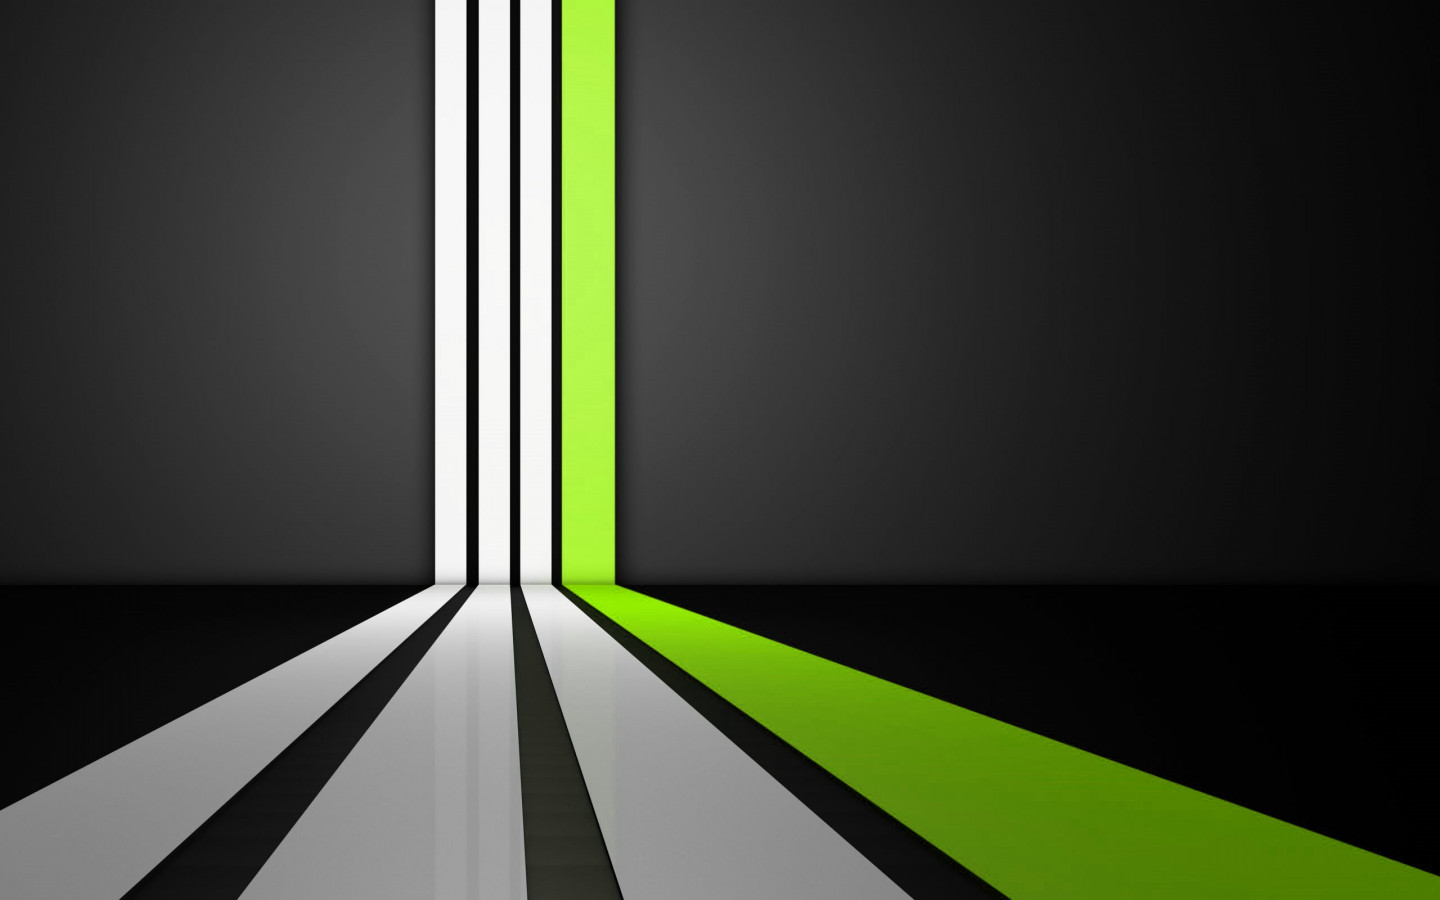 Clean Lines Green wallpaper 1440x900